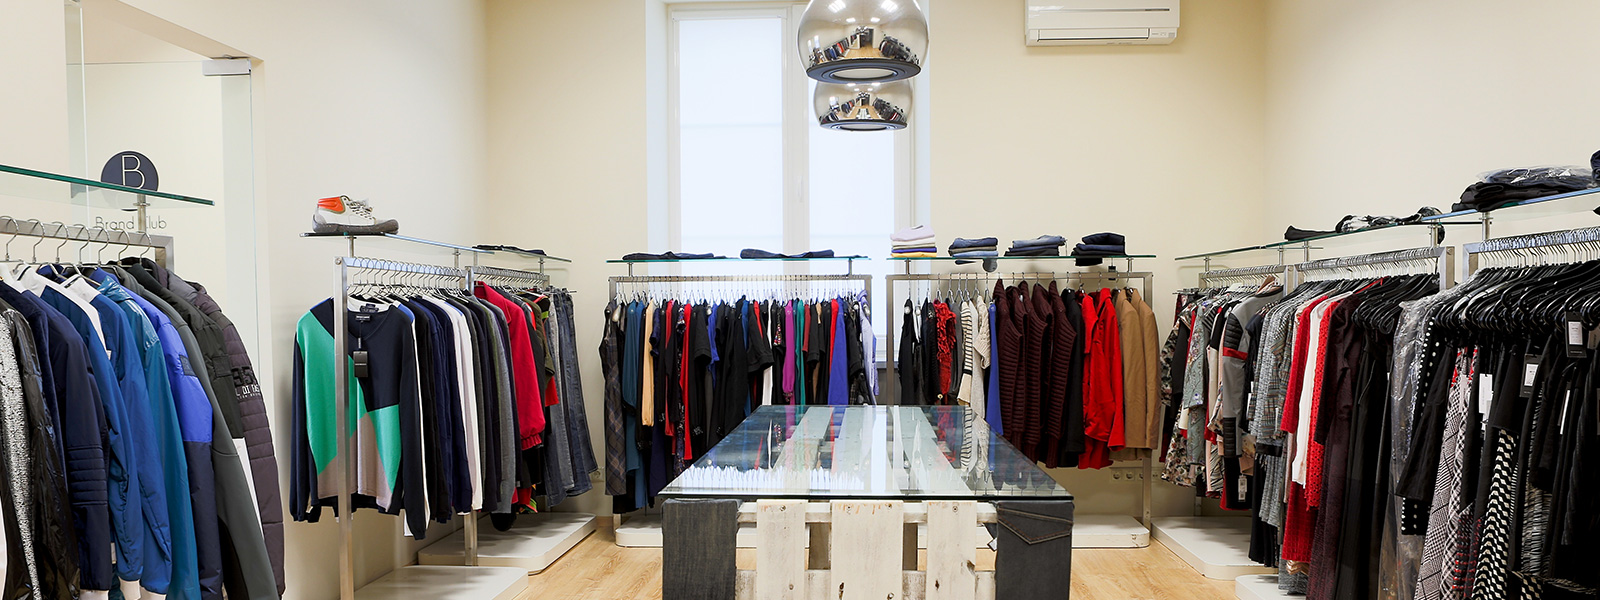 VISIT OUR 5,000 SQ FT SHOWROOM OF PREMIUM WHOLESALE FASHION